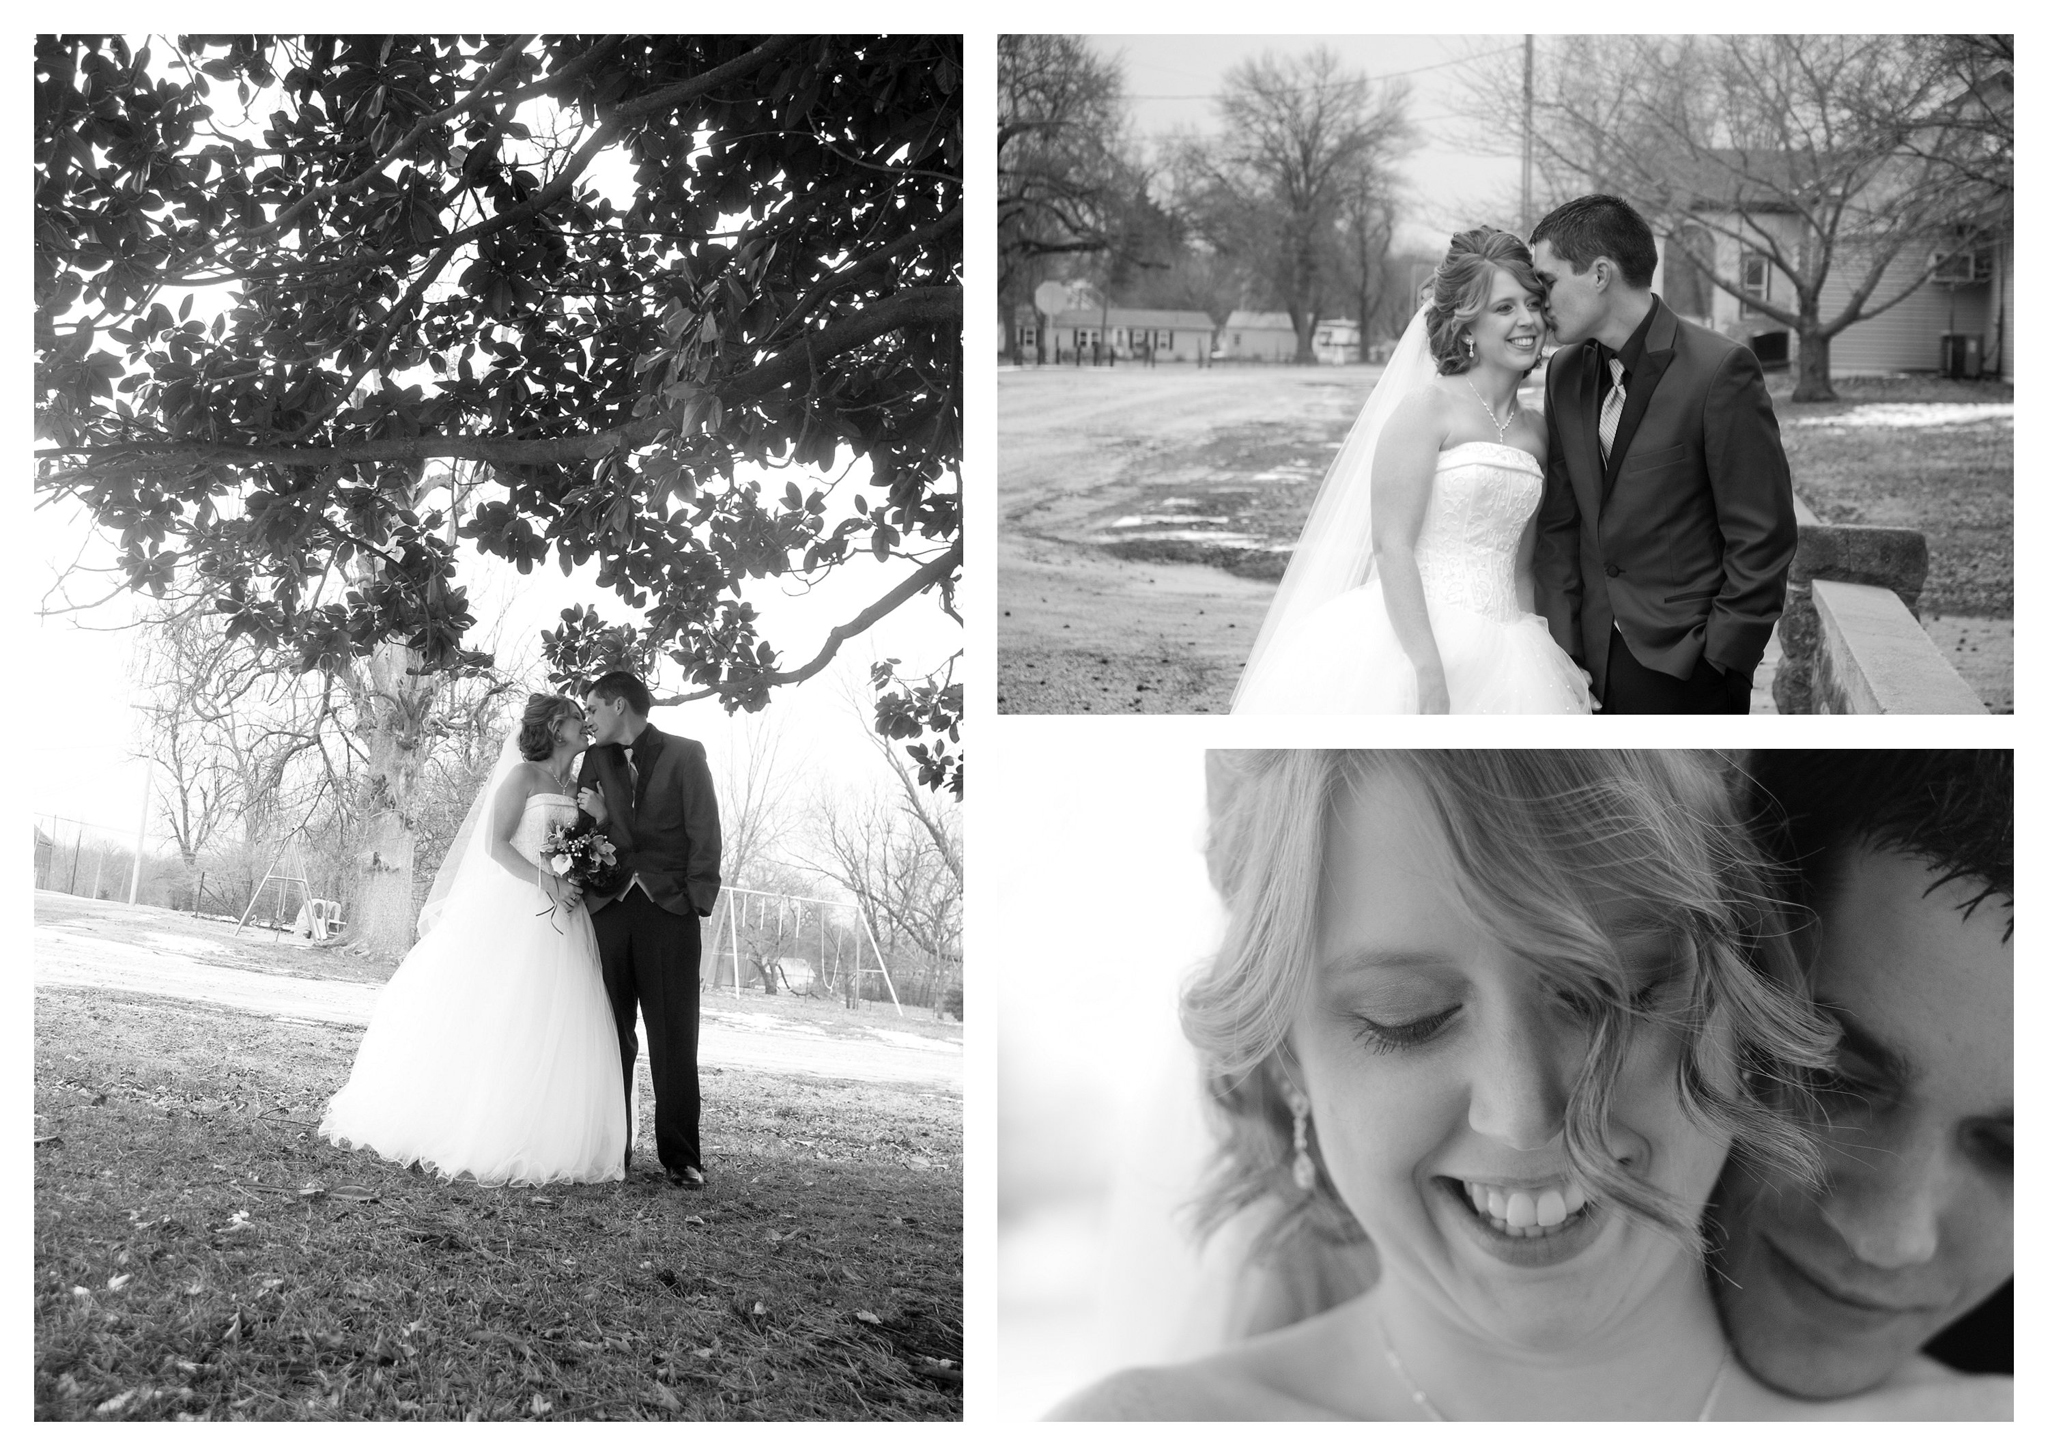 Black and white Wedding Photo by Johnson County Wedding Photographer Brittany Tarchala